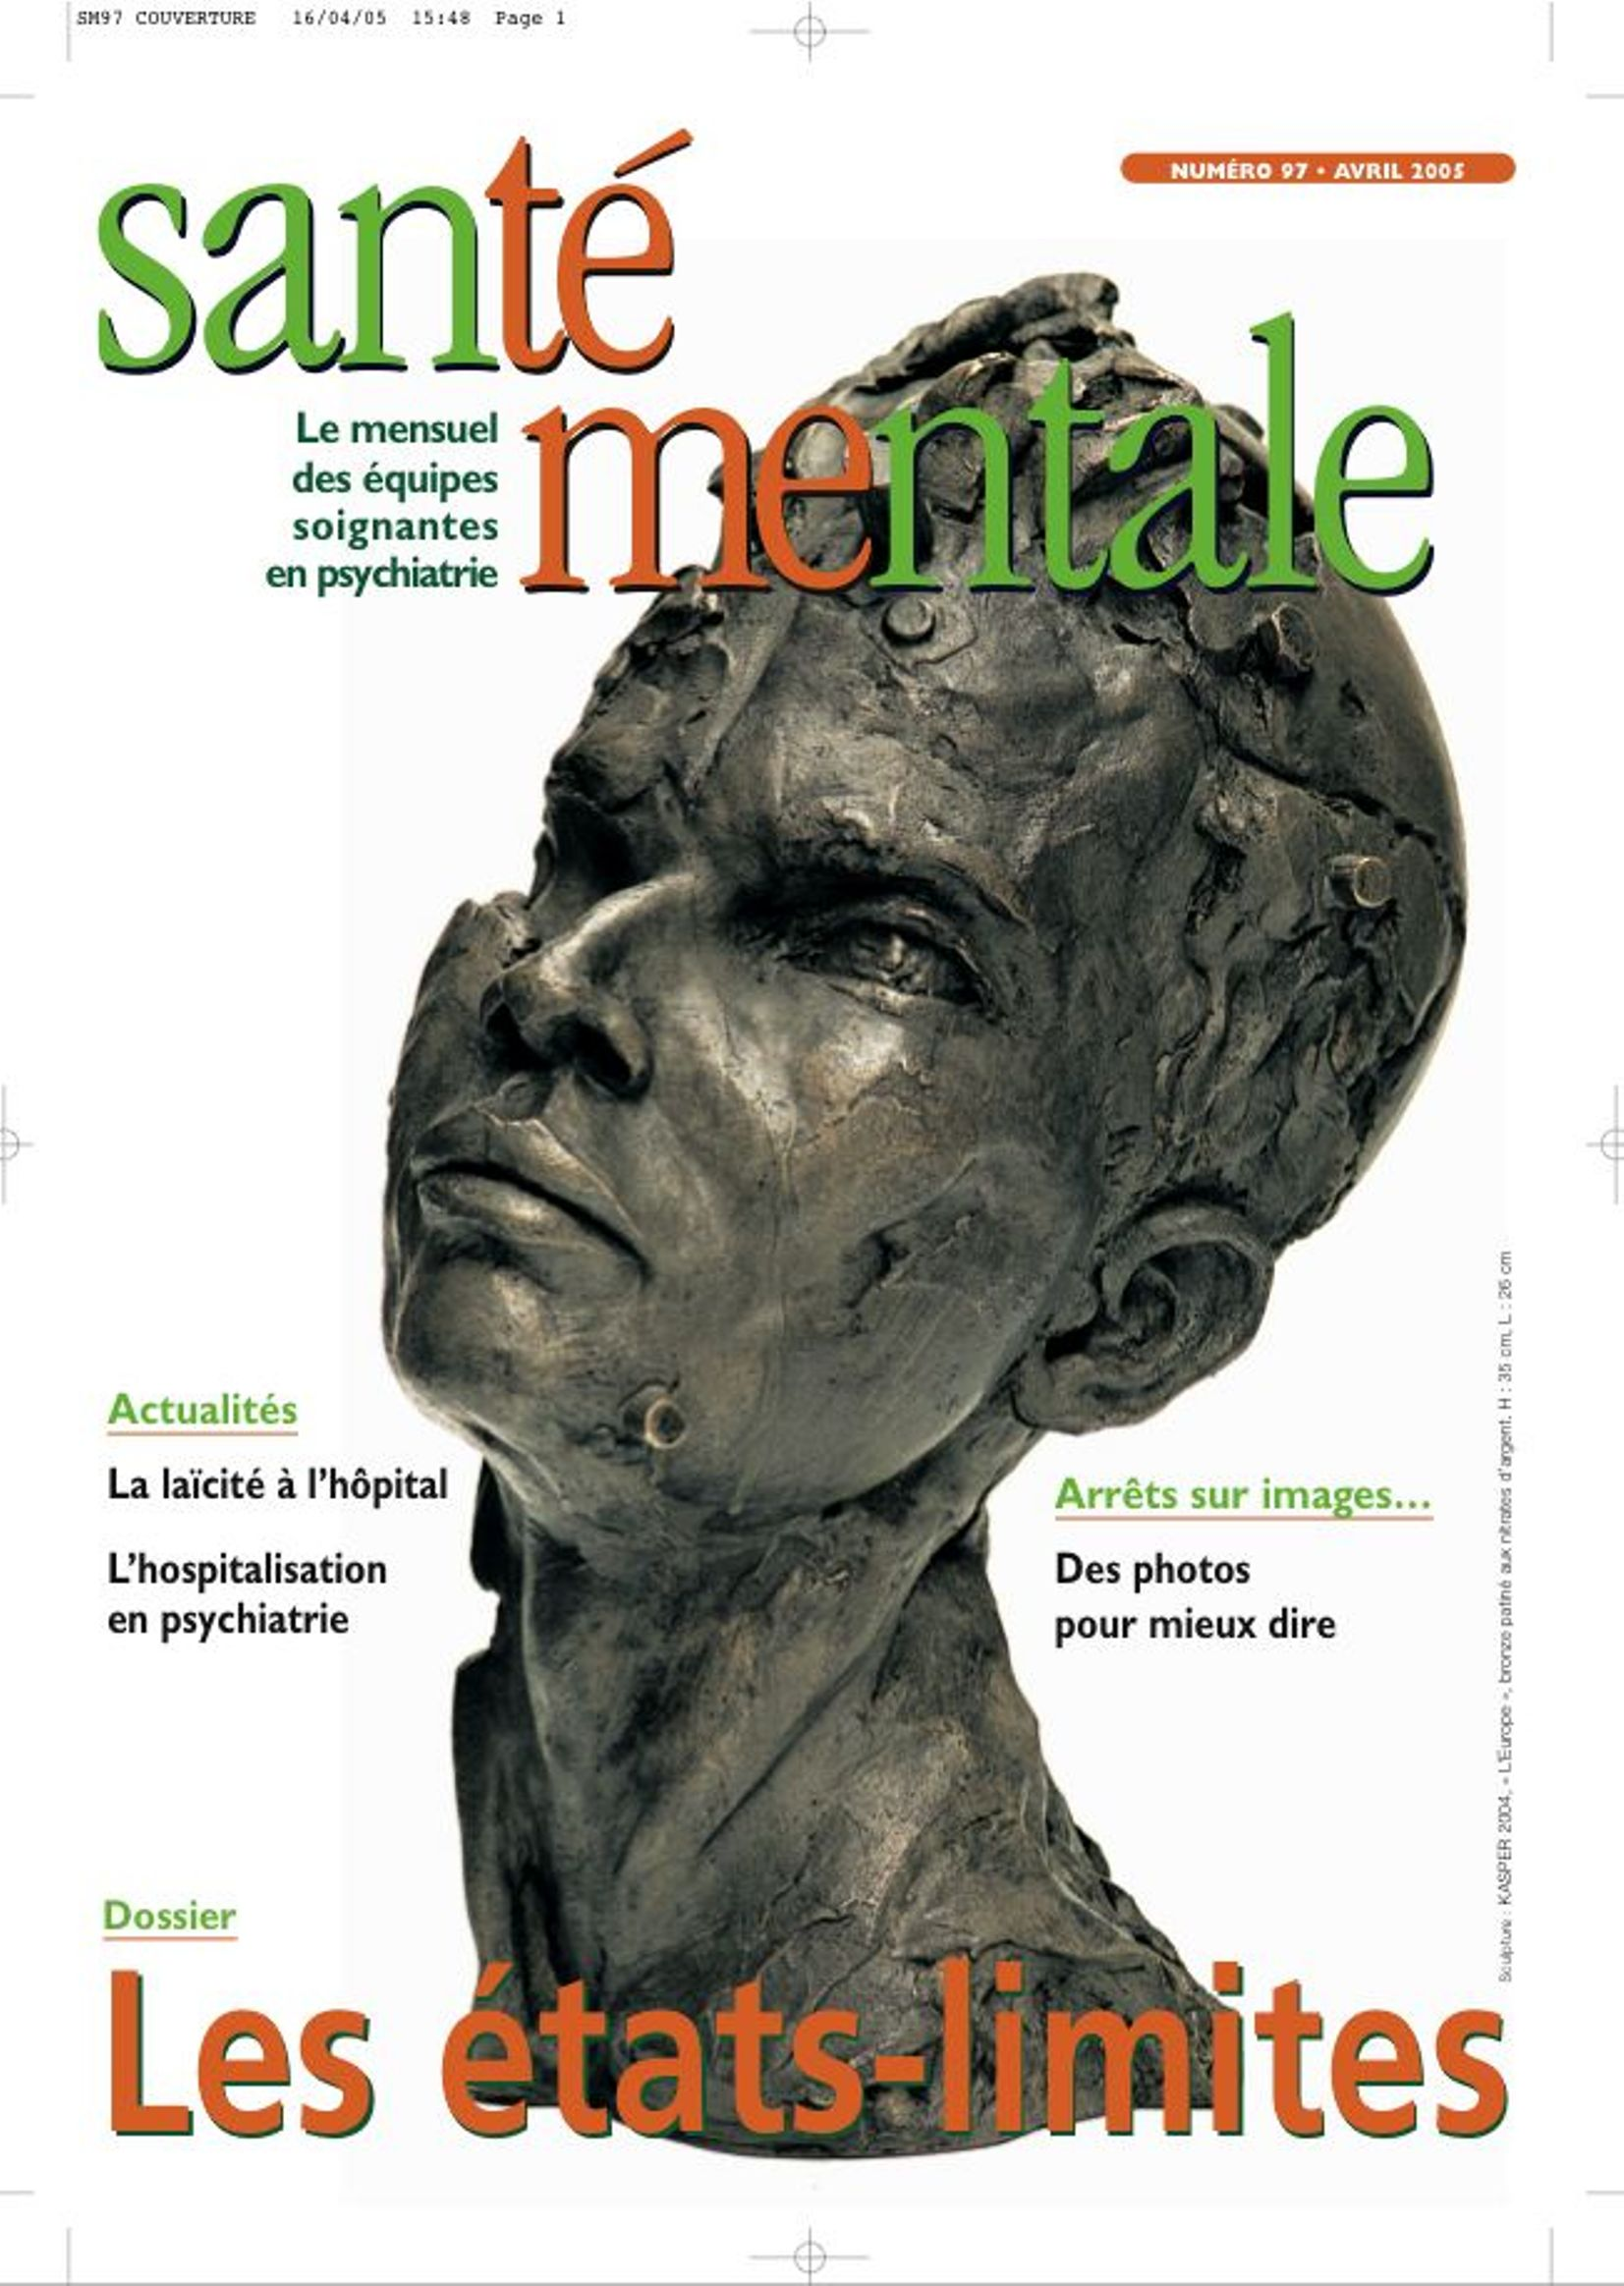 Couverture N°97 AVRIL 2005